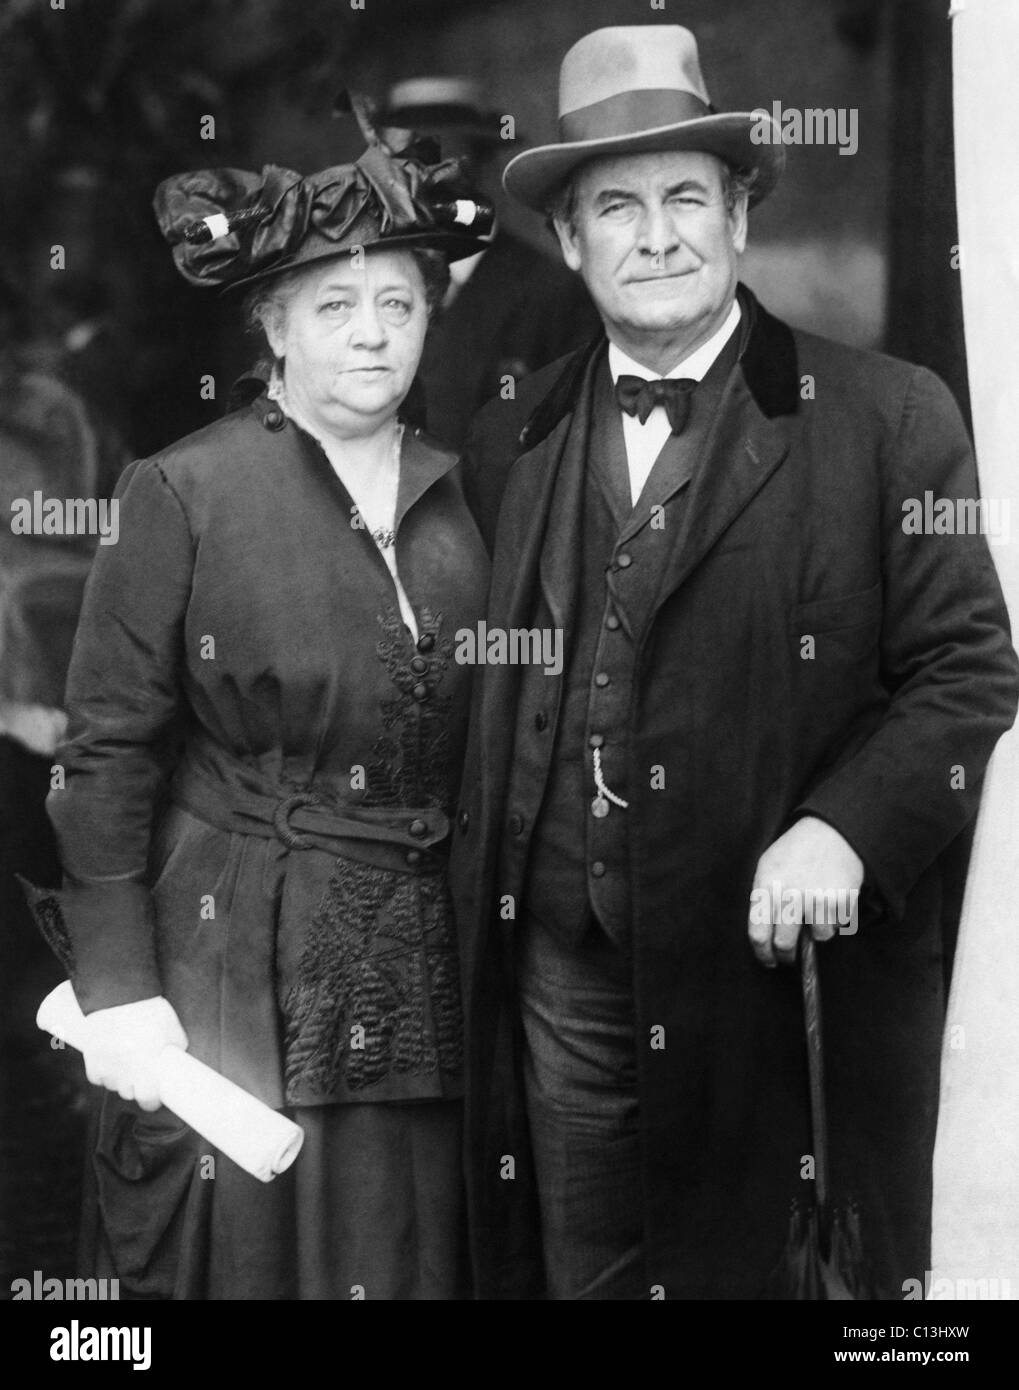 William Jennings Bryan (right), and his wife, Mary Bryan, circa 1910s. - Stock Image